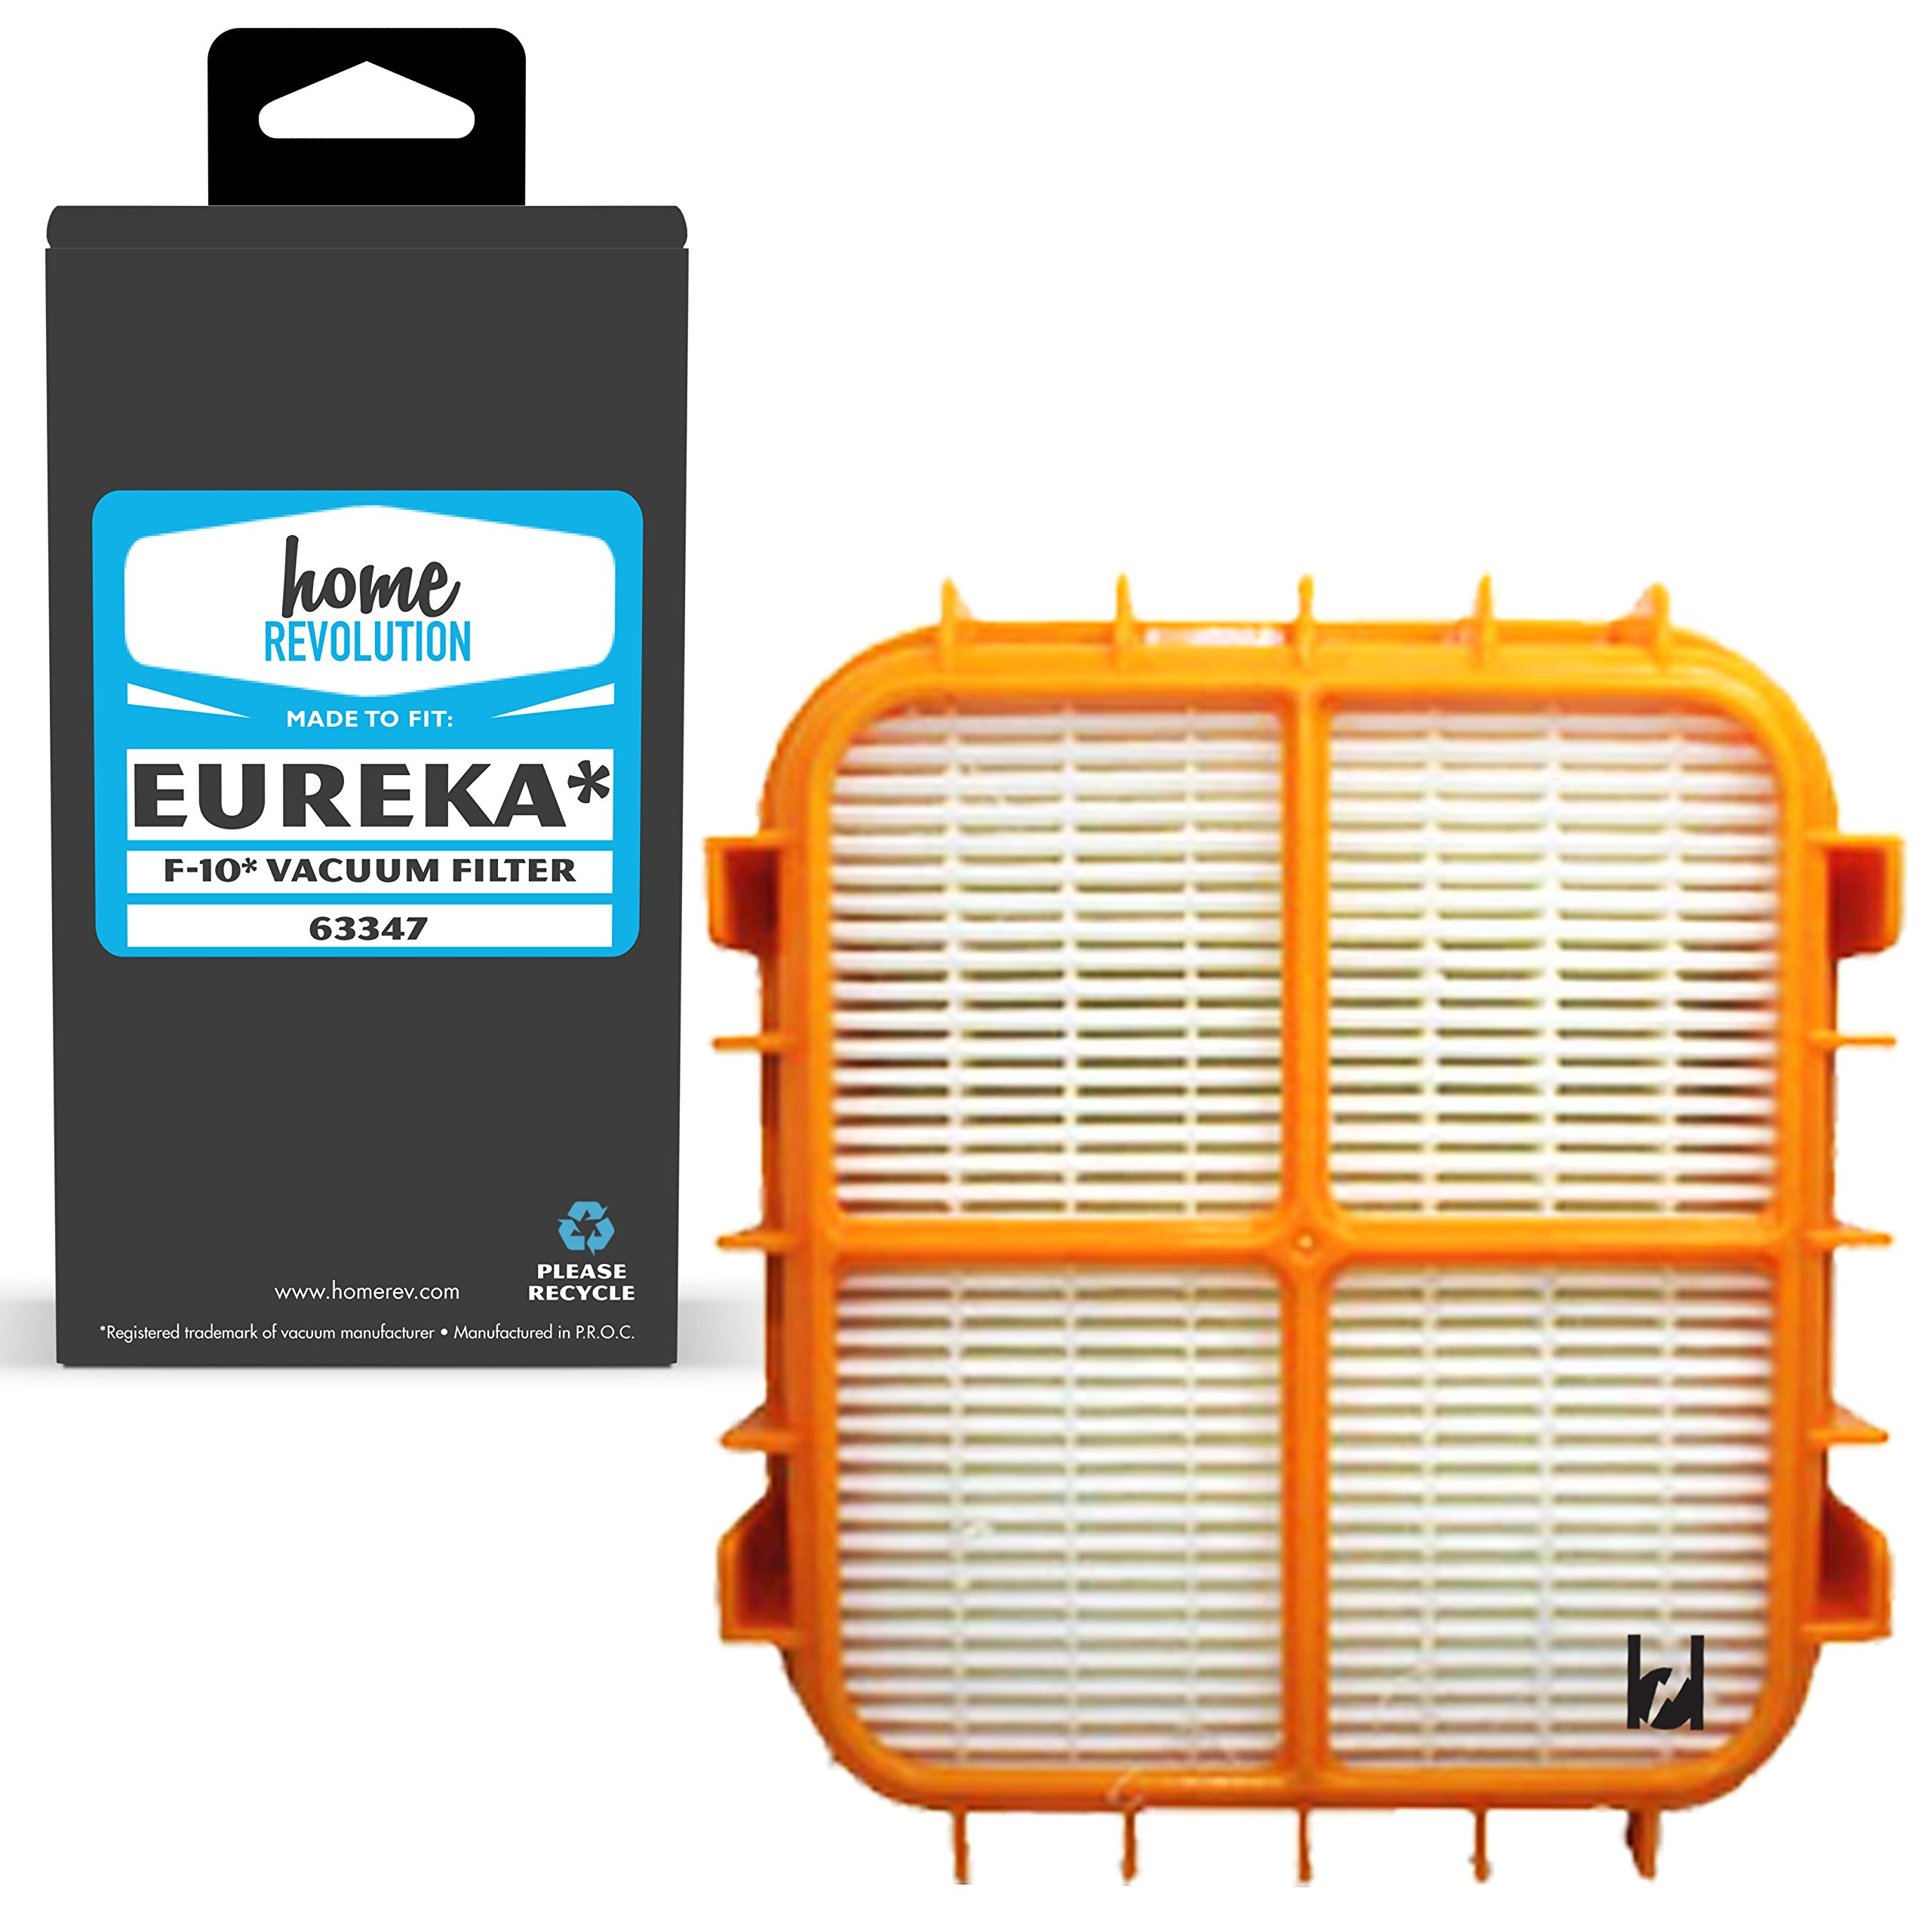 Home Revolution Replacement HEPA Filter, Fits Eureka HF-10 Upright Vacuum Cleaner, Boss Capture and Pet Love Models and Part 63347, 63347-4, 77973.